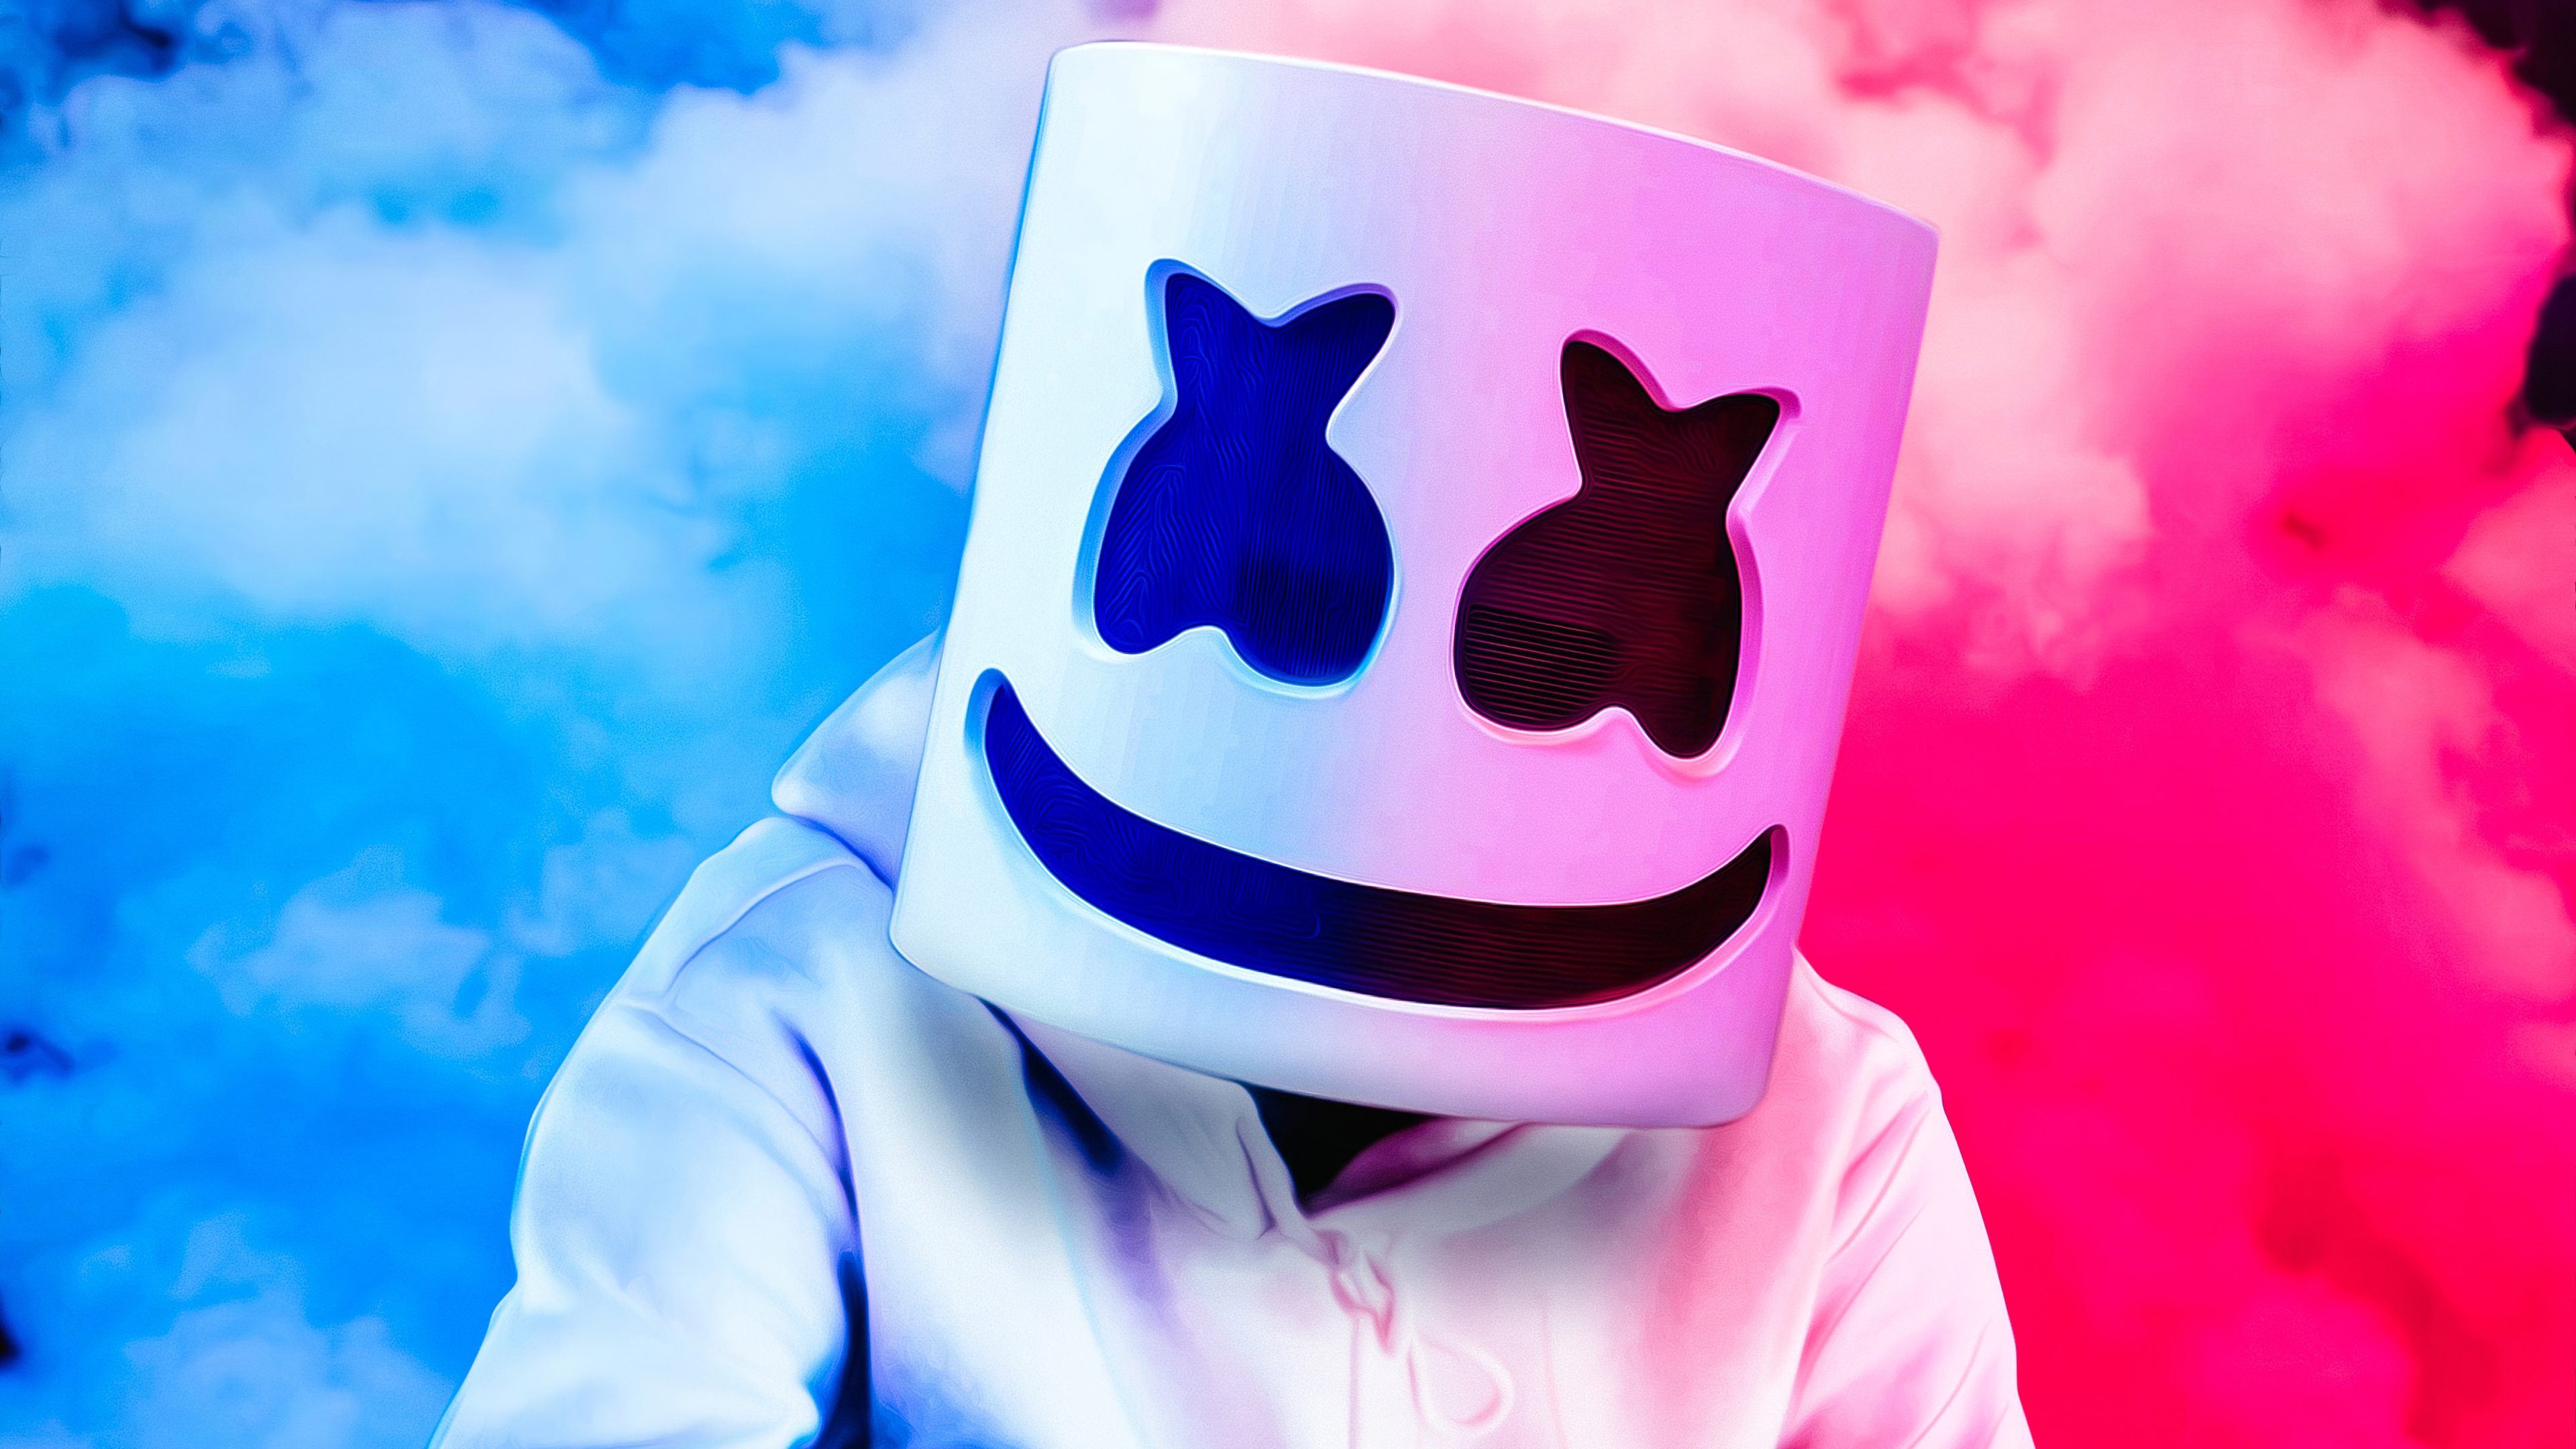 3840x2160 Marshmello 2020 4k HD 4k Wallpapers, Images ...